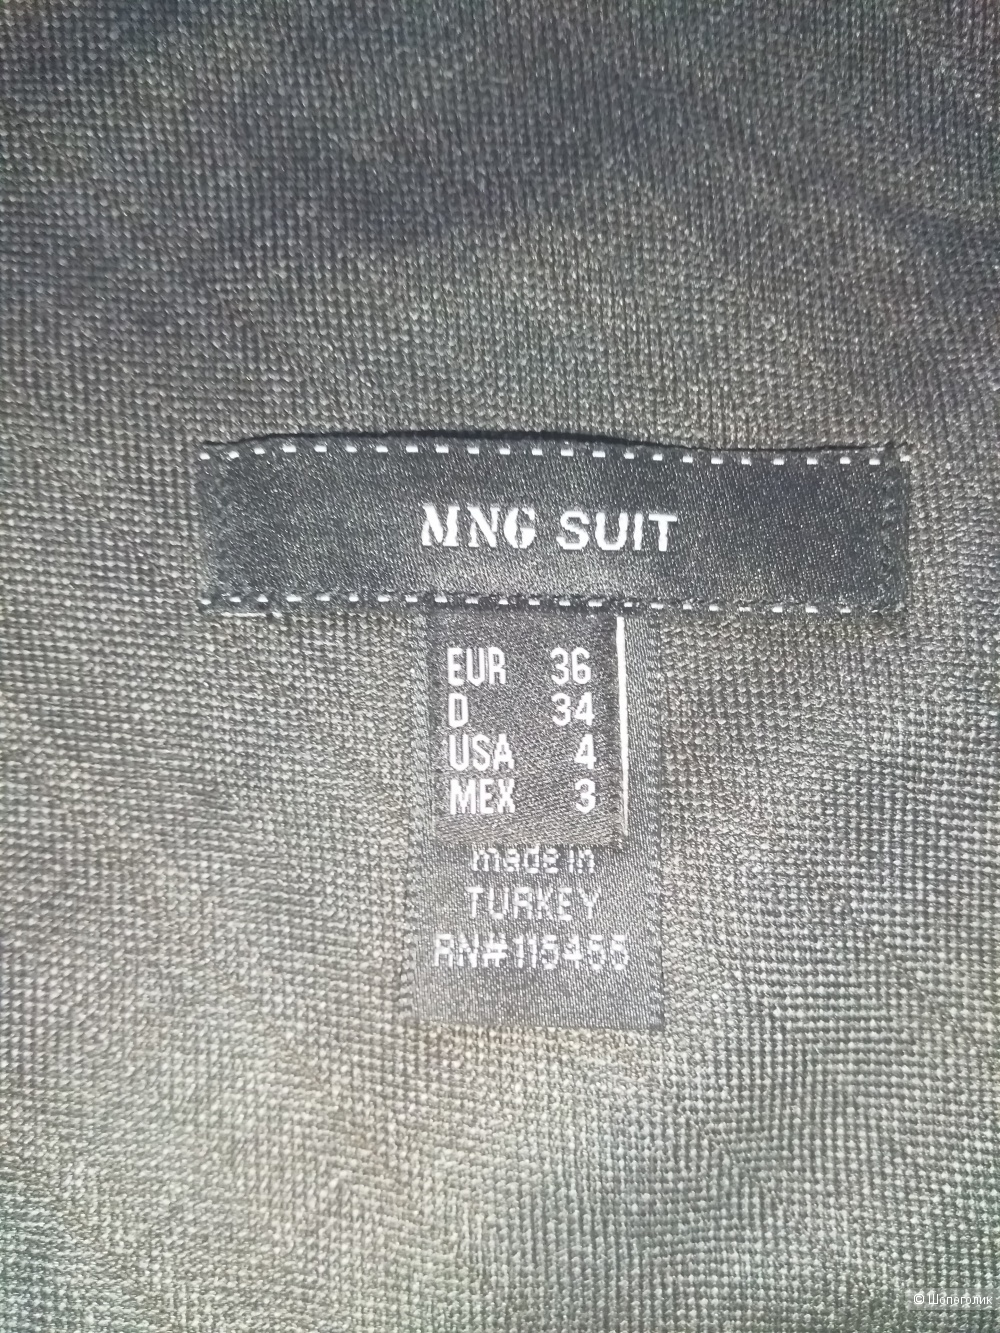 Юбка MNG SUIT, размер S/M